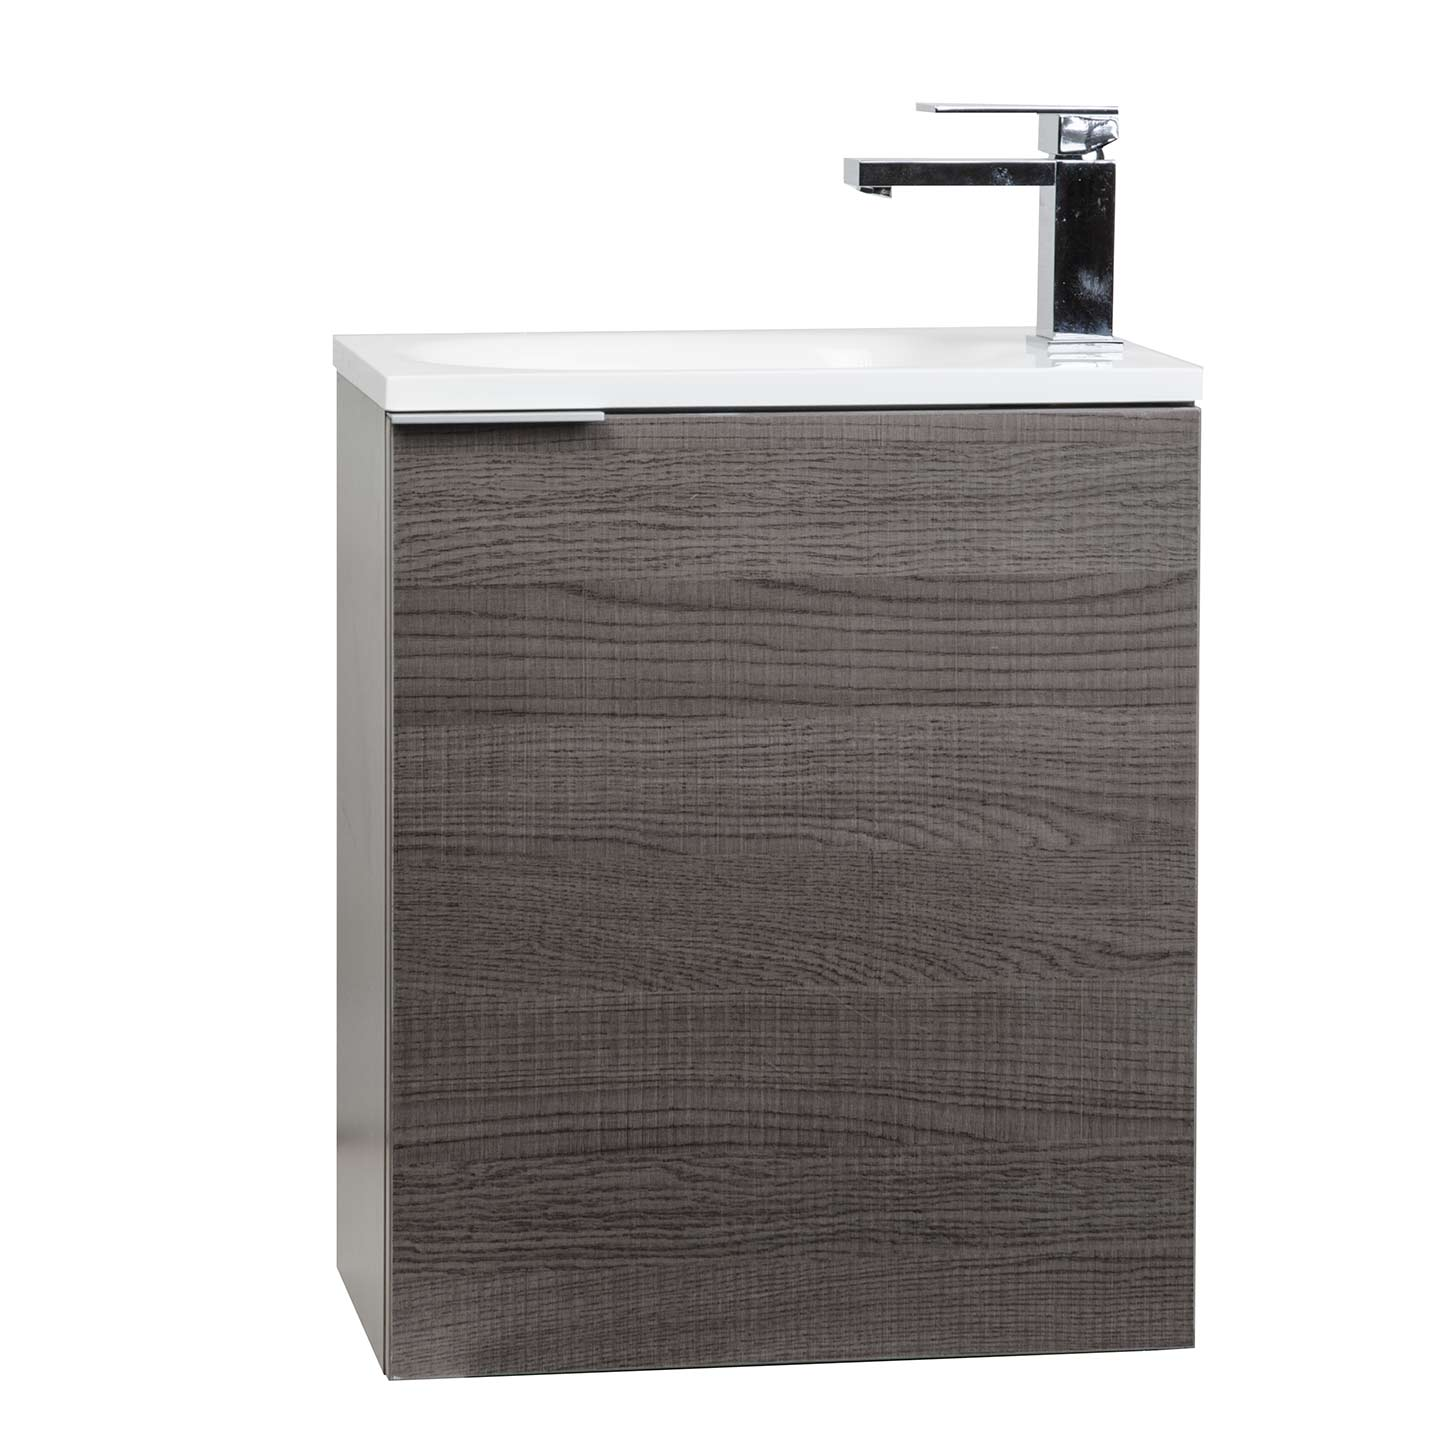 Stores that sell bathroom vanities - Buy Bathroom Vanities Bathroom Vanity Cabinets On Conceptbaths Com Free Shipping